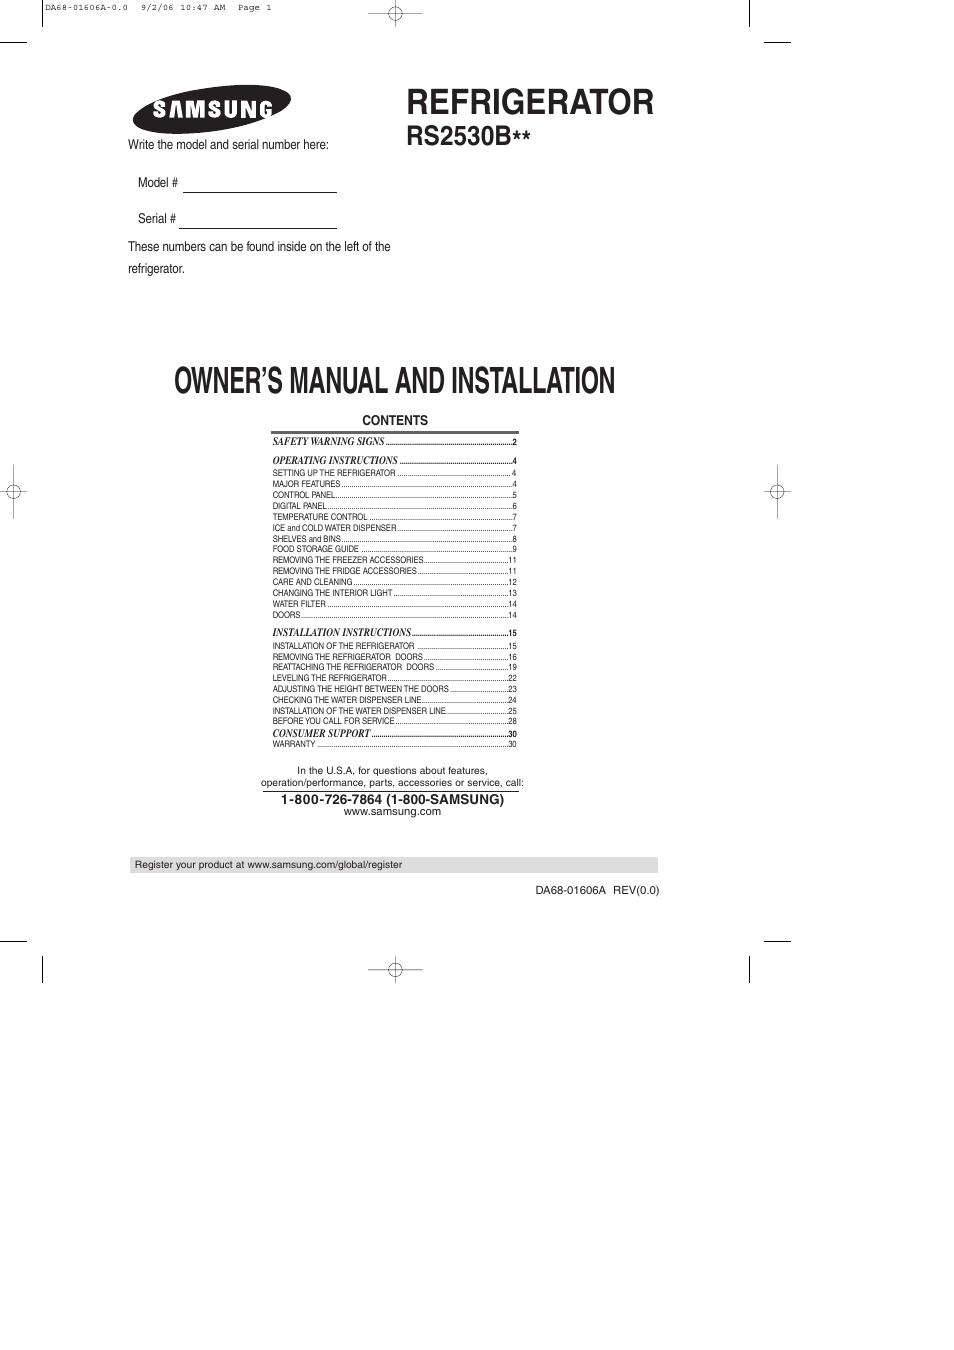 samsung rs2530bwp-xaa user manual | 32 pages | also for: rs2530bbp-xaa,  rs2530bsh-xaa